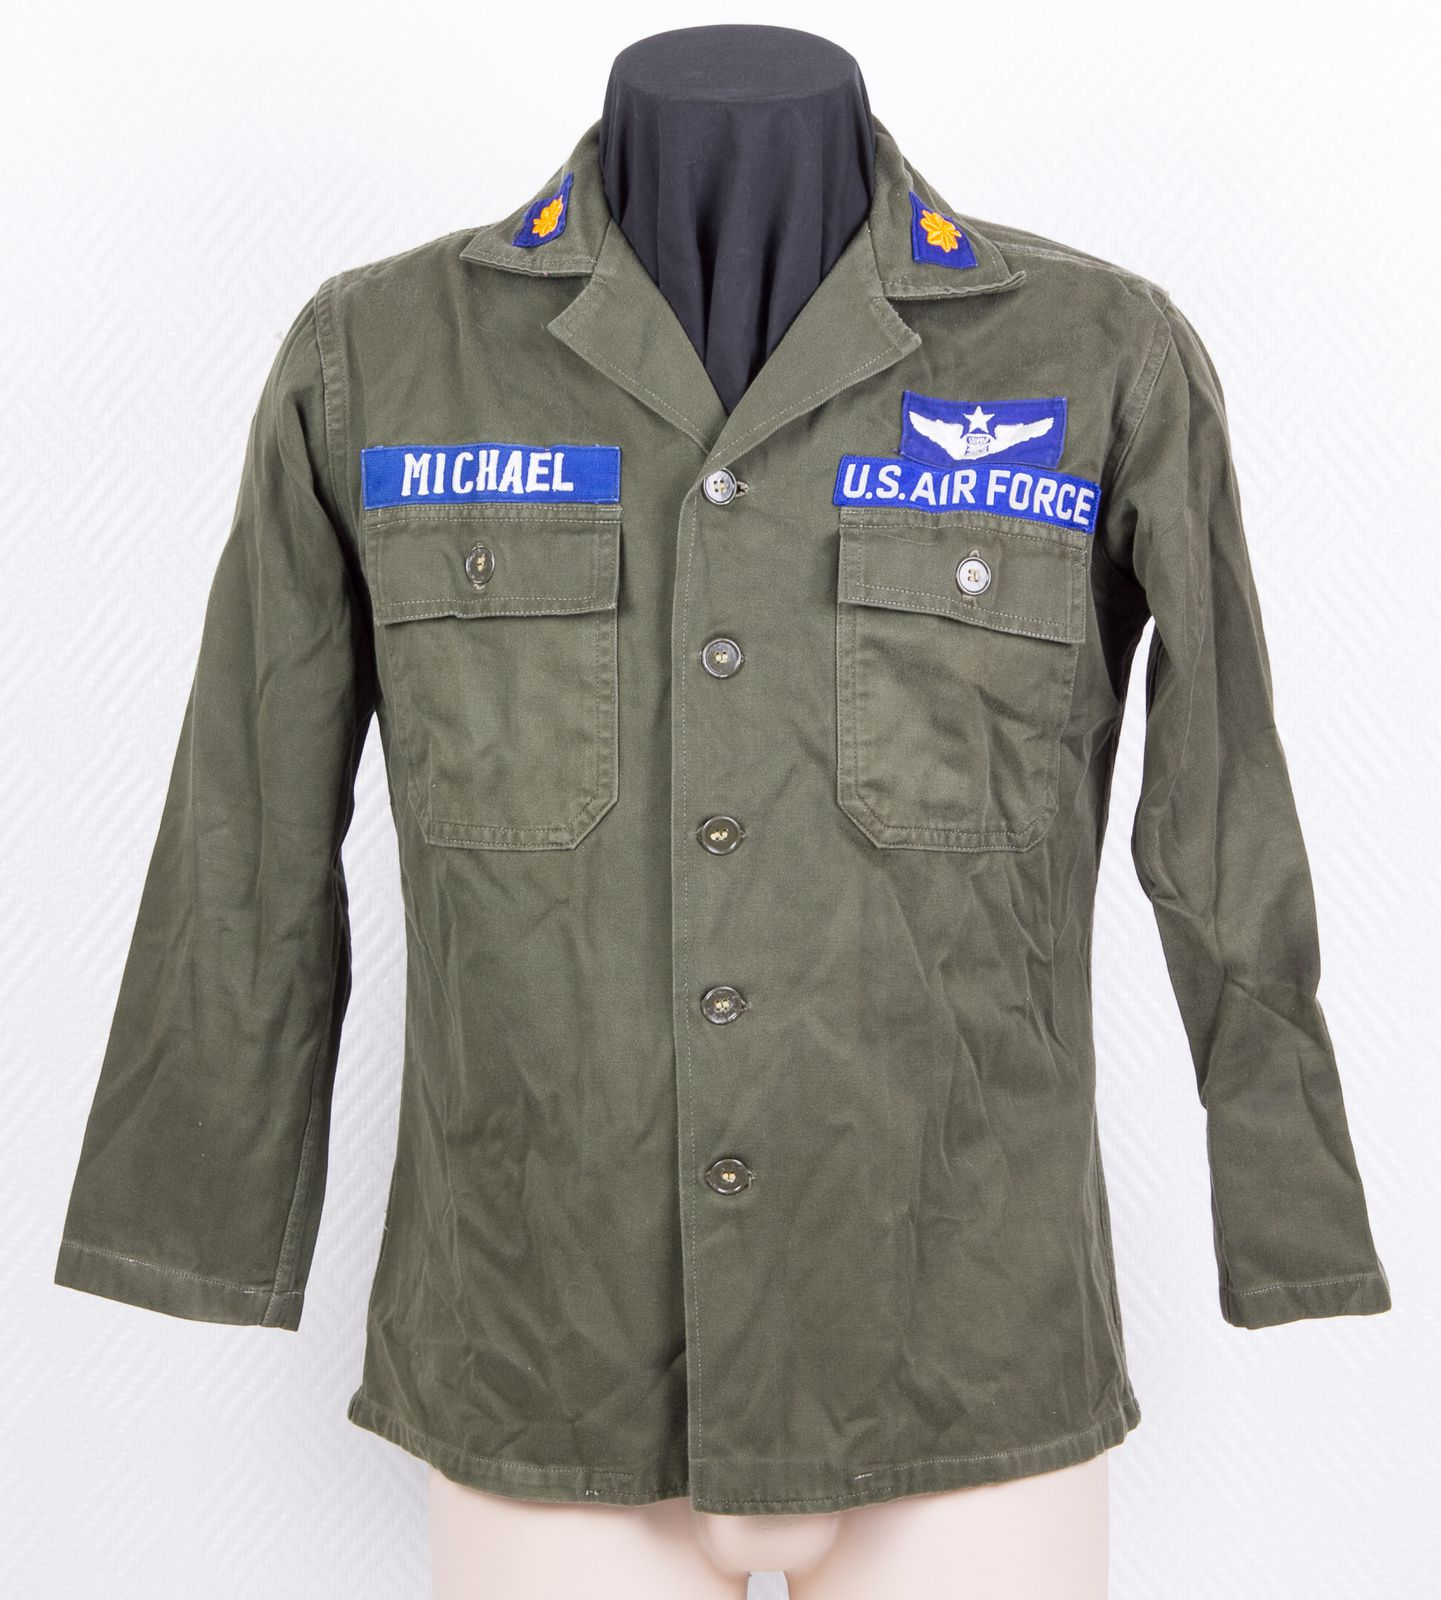 The grouping is a snapshot of what Maj. Michael wore while based at Korat RTAFB in 1975. The OG 107 utility uniform is surprisingly the outdated 1st model, easily identified with the rectangular flaps of the breast pockets. Full color patches are worn, including name and U.S. Air Force tapes, wings and ranks. Trousers and leather boots (not shown) also came with the grouping.